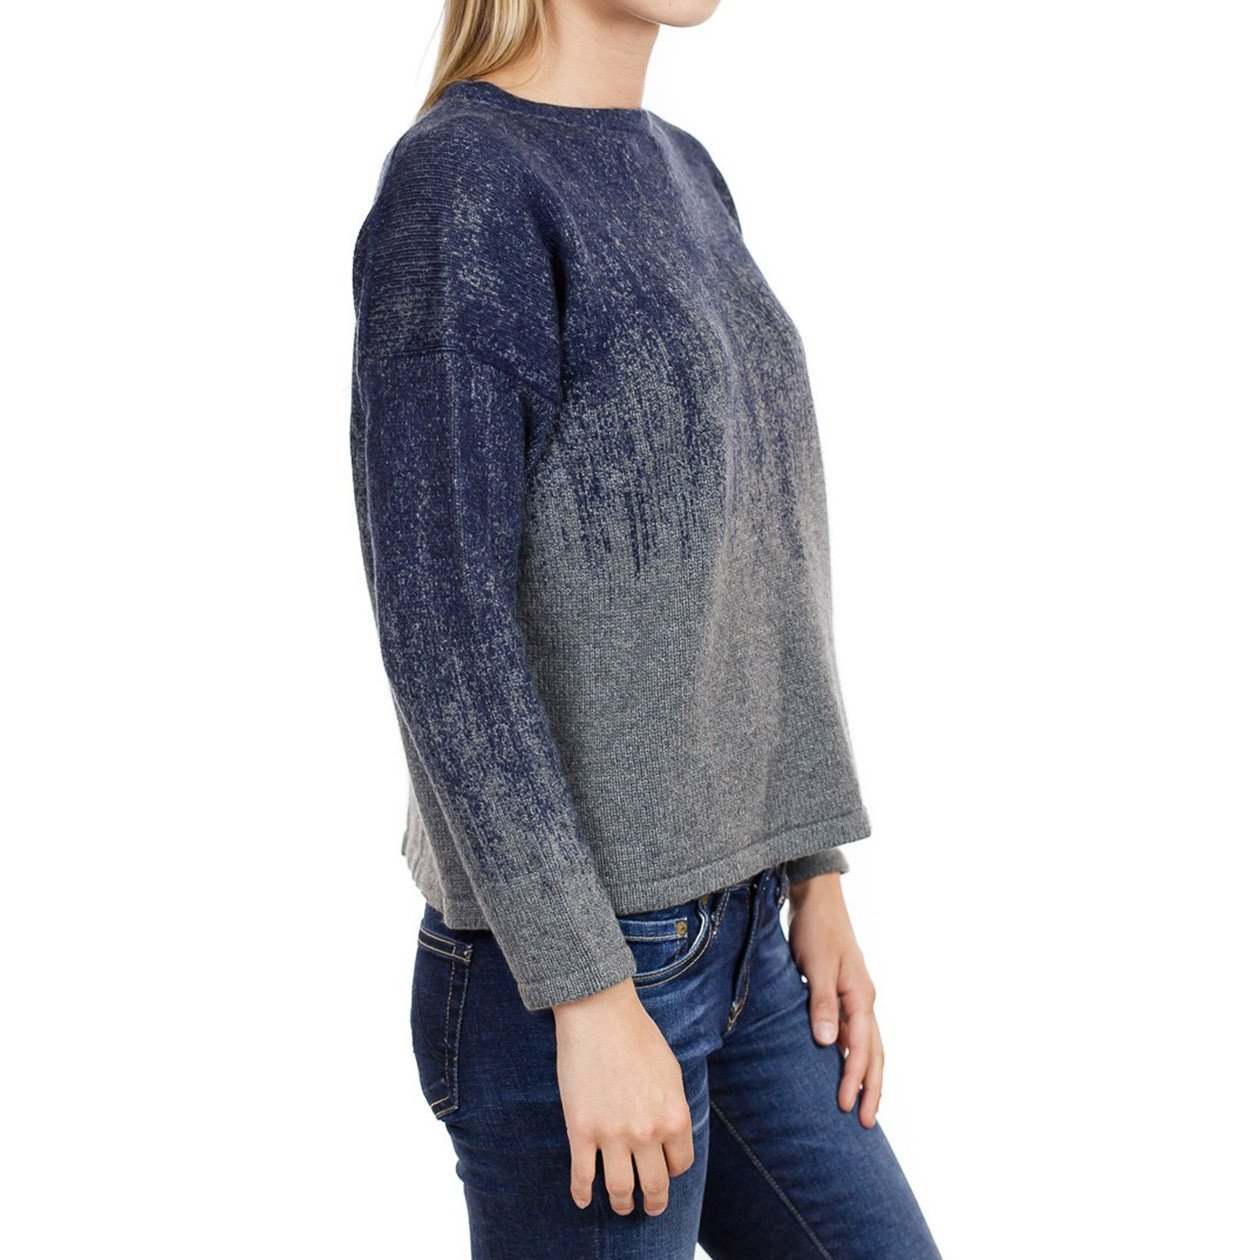 Fine Collection Womens Ombre Crewneck Sweater Heather Grey/Navy XS by Fine Collection (Image #2)